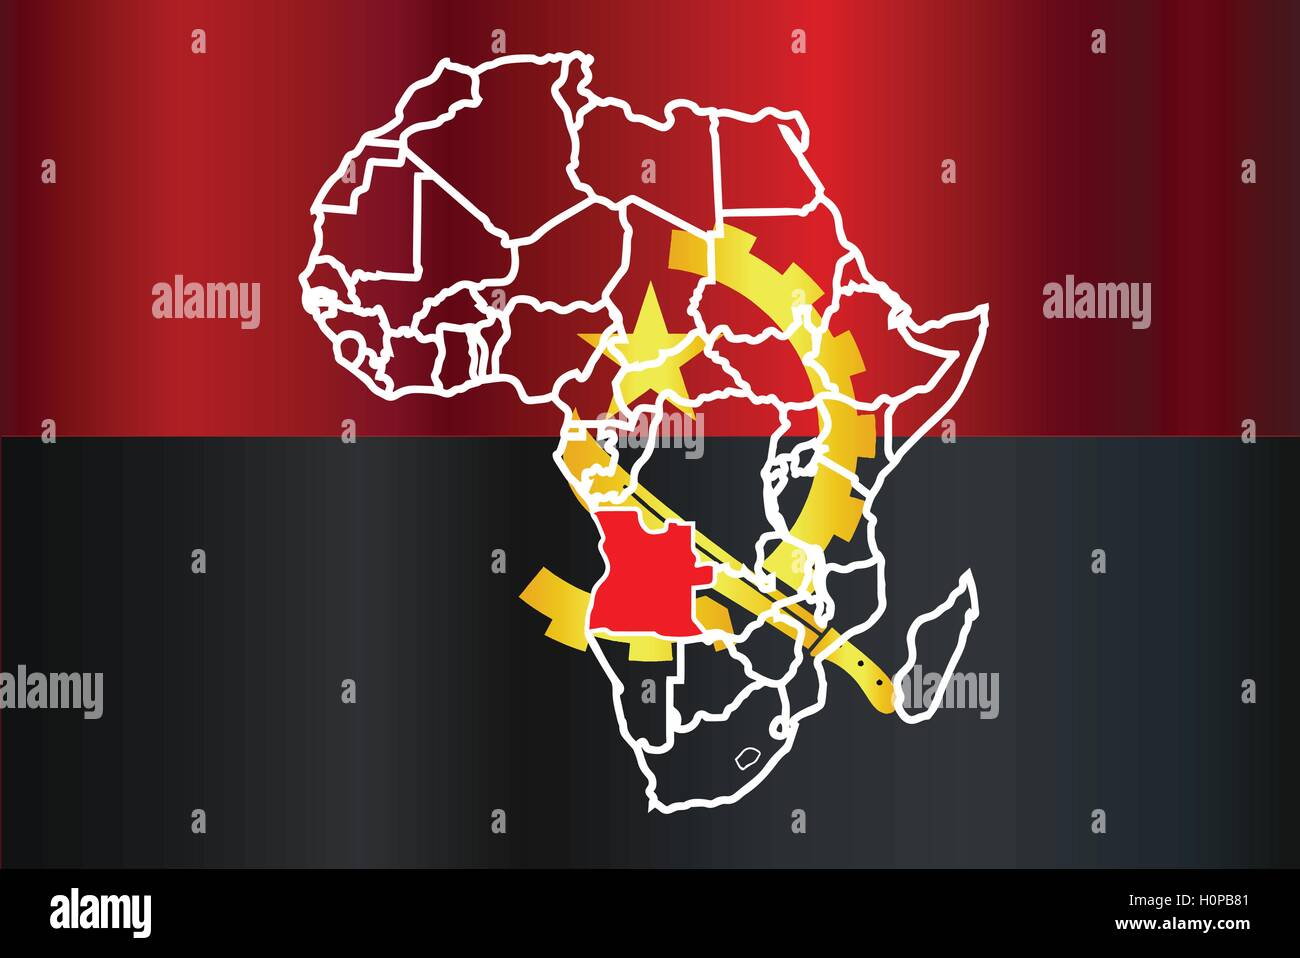 Angola outline inset into a map of Africa over a white background - Stock Vector